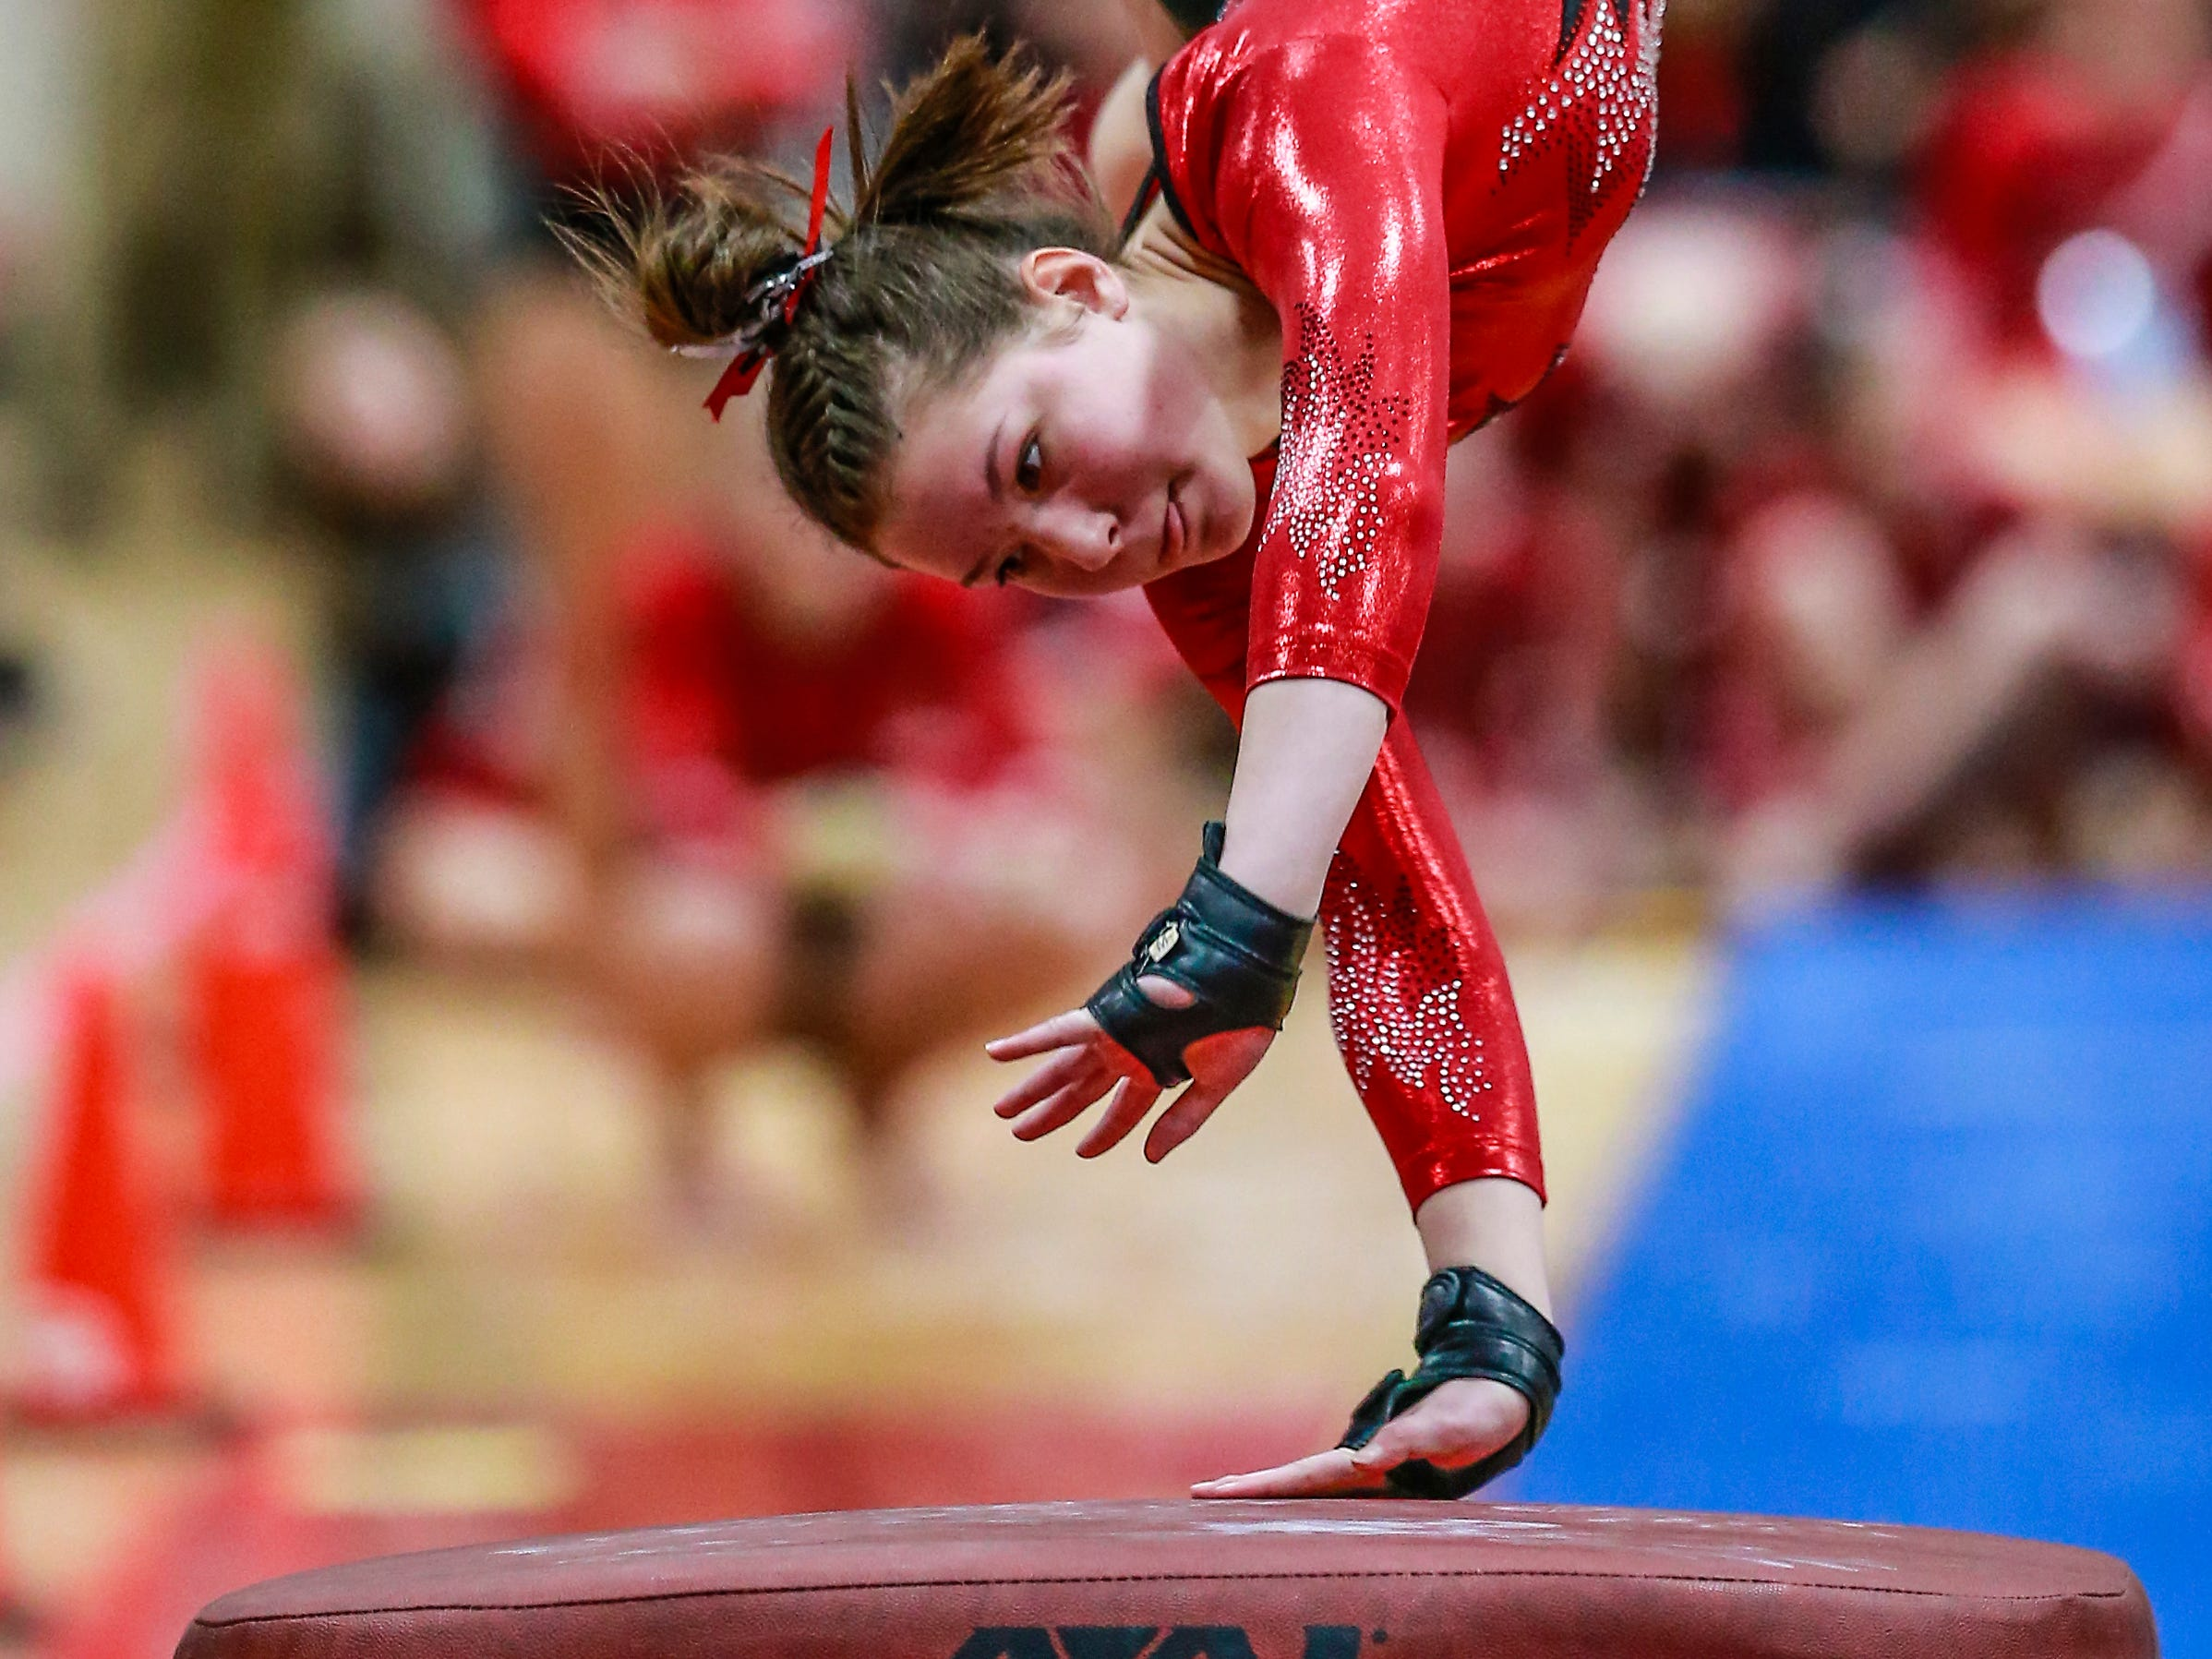 Medford's Megan Wanke competes in the vaulting during WIAA state gymnastics competition Friday, March 1, 2019, at Lincoln High School Field House in Wisconsin Rapids, Wis. T'xer Zhon Kha/USA TODAY NETWORK-Wisconsin